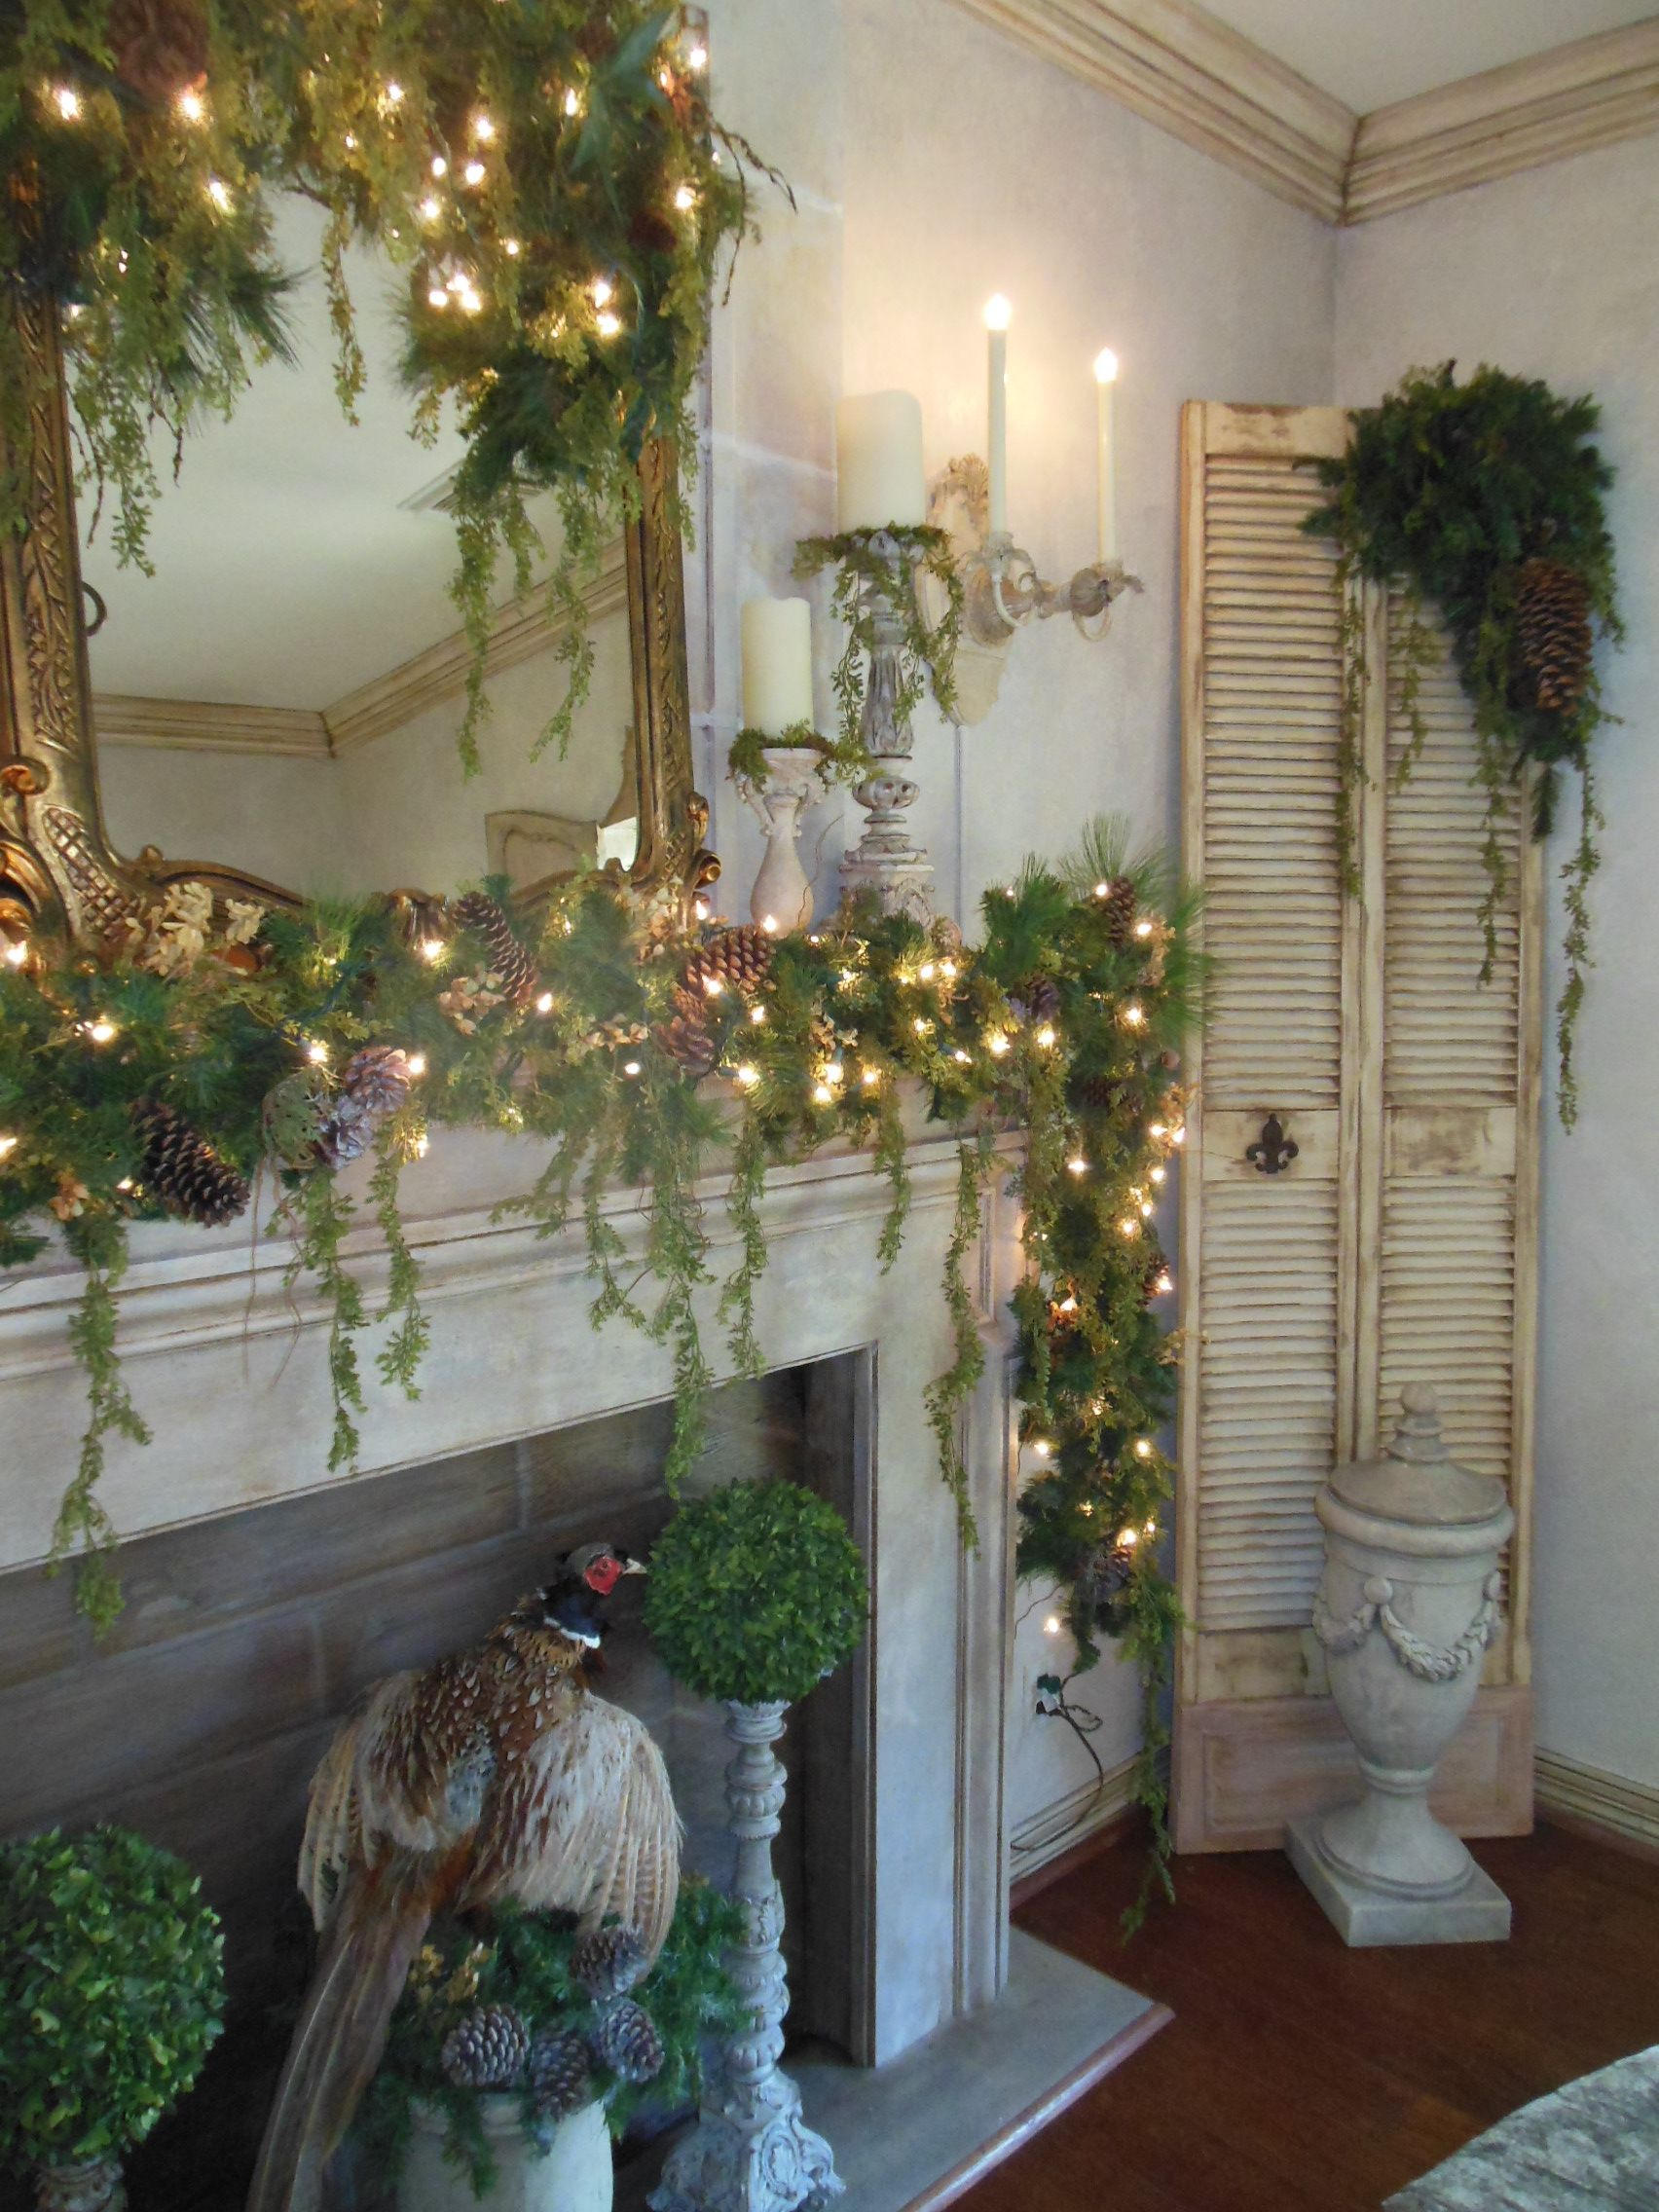 Our Dining Room....Christmas 2015